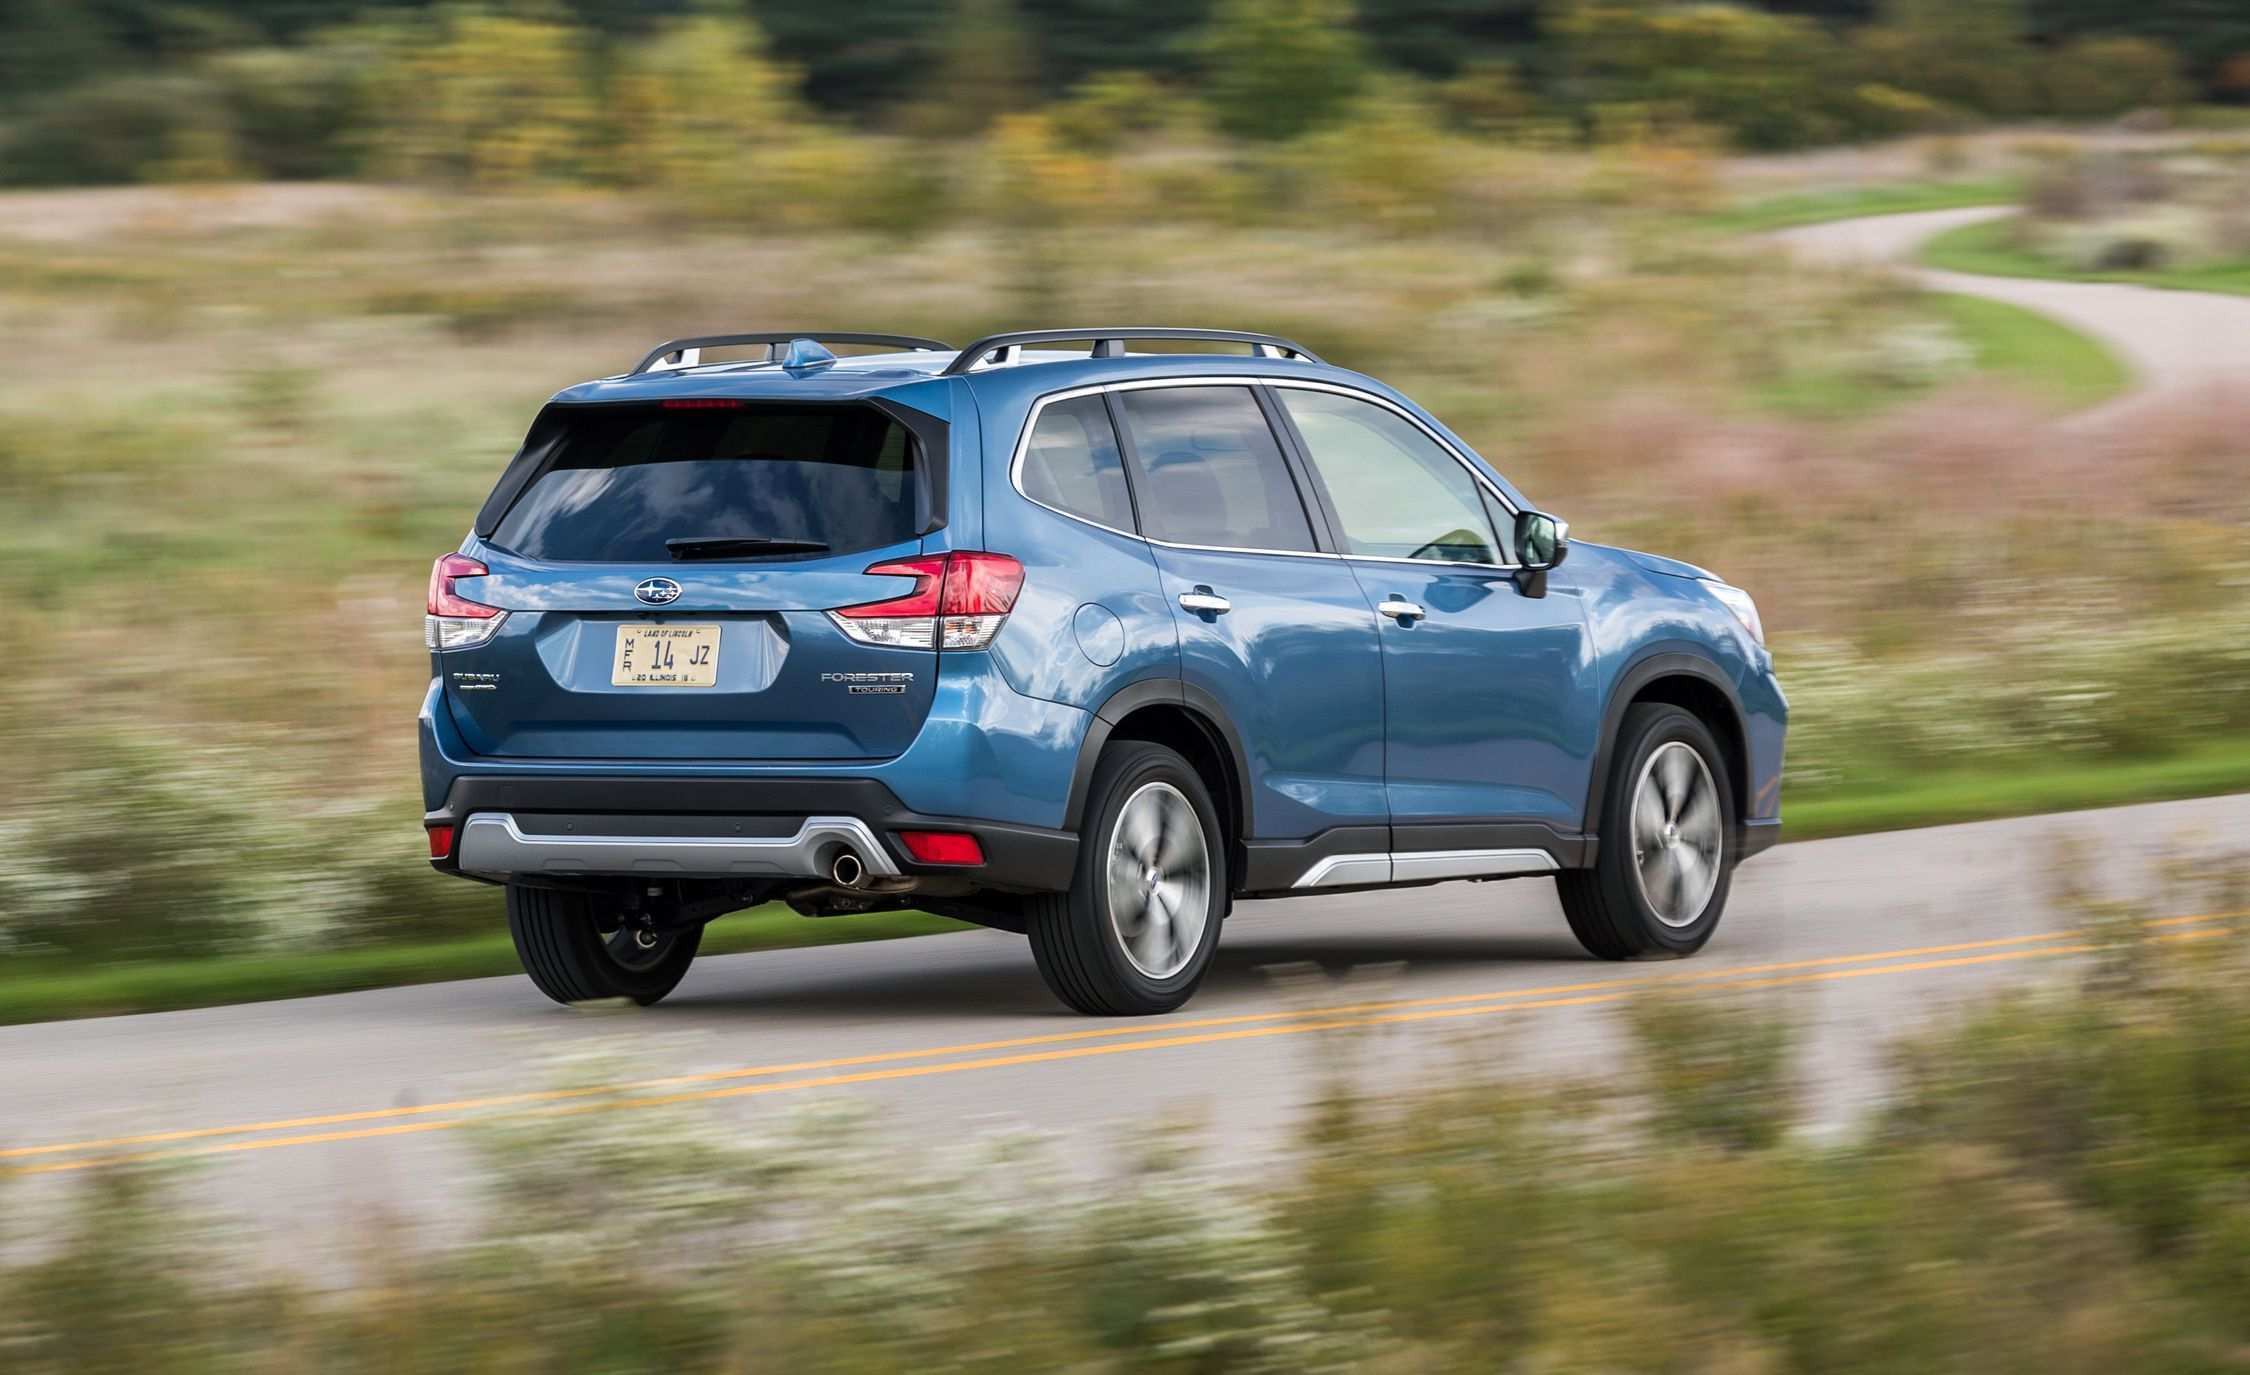 53 All New Subaru Forester 2019 Gas Mileage Reviews